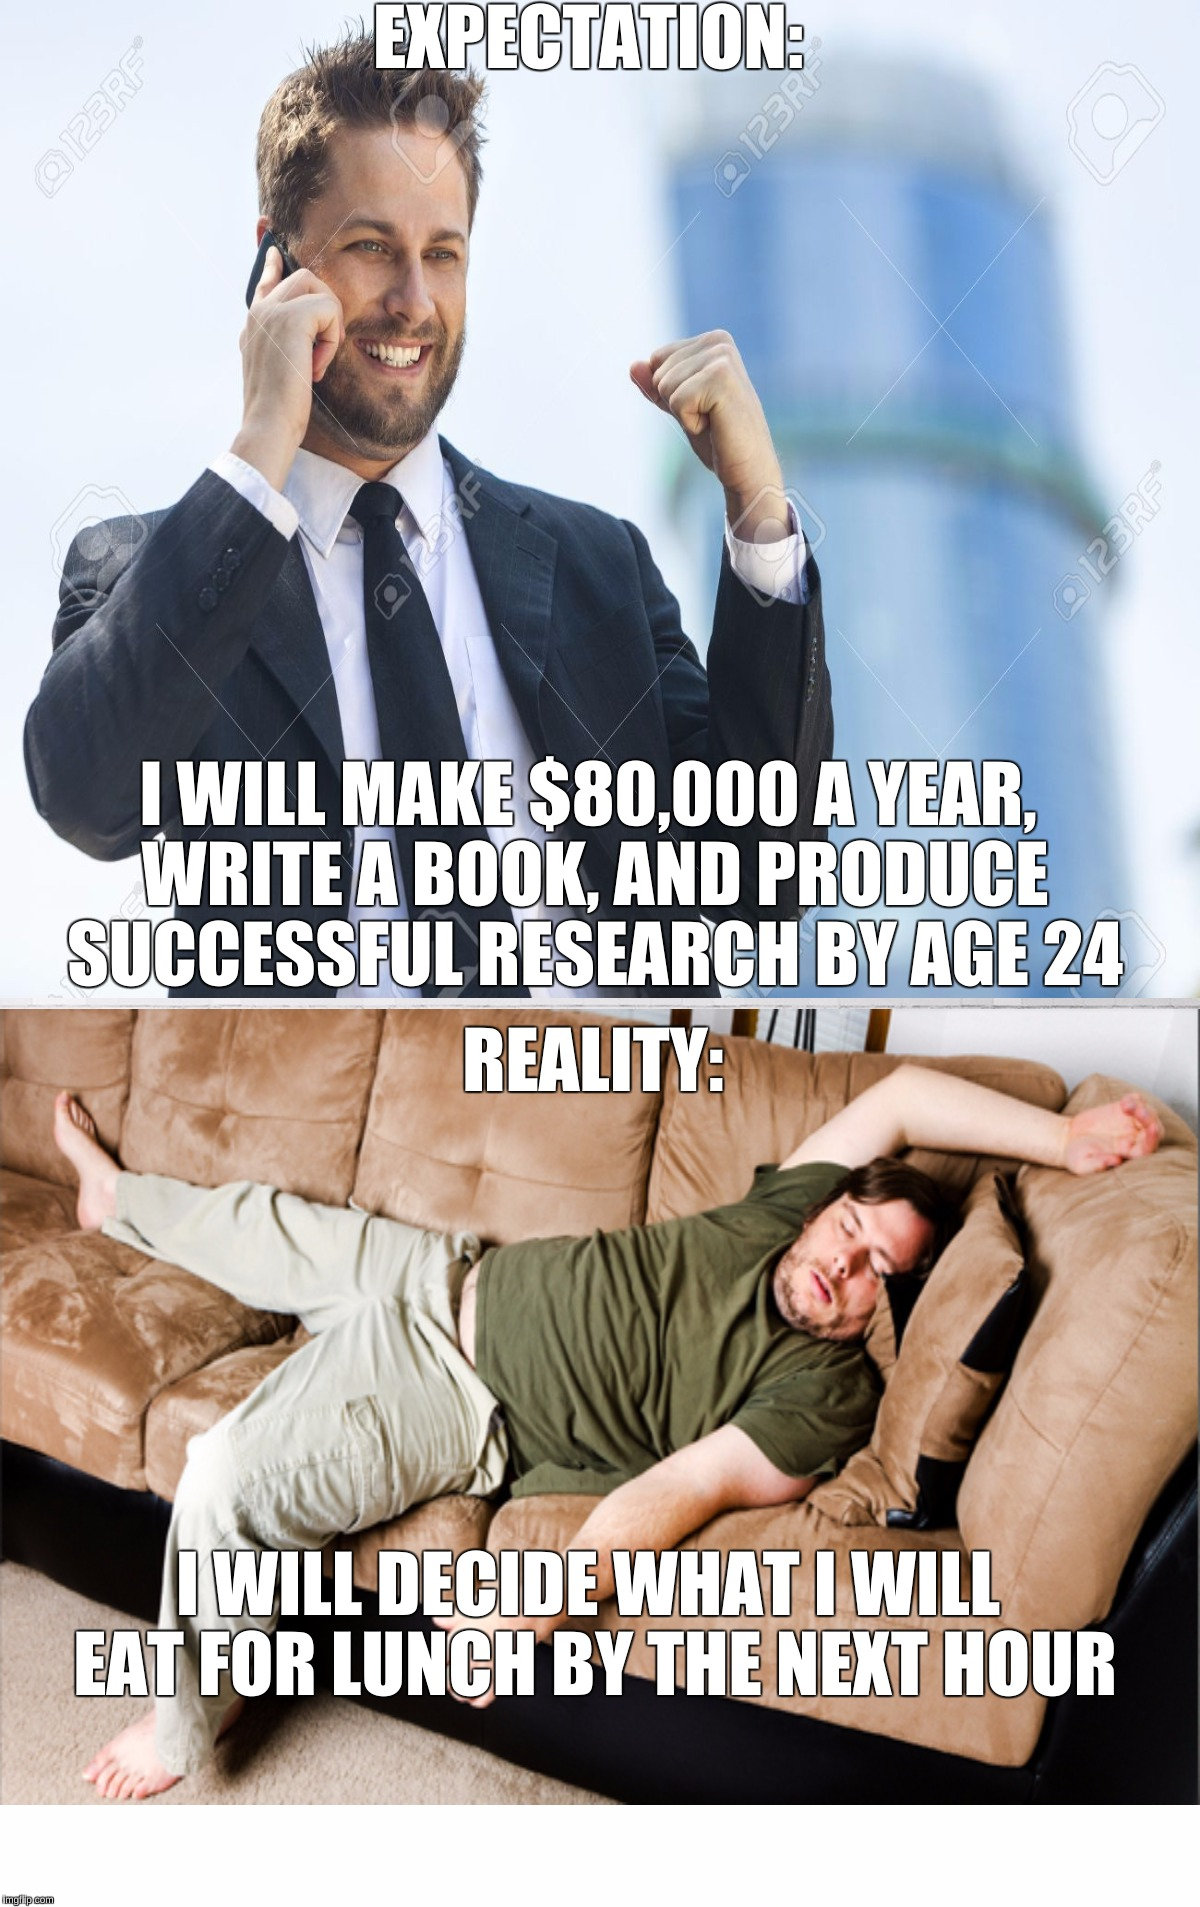 What goes on in the minds of most 20-year-olds  | EXPECTATION: I WILL DECIDE WHAT I WILL EAT FOR LUNCH BY THE NEXT HOUR REALITY: I WILL MAKE $80,000 A YEAR, WRITE A BOOK, AND PRODUCE SUCCESS | image tagged in memes,so true memes,successful black man,lazy college senior,expectation vs reality,funny | made w/ Imgflip meme maker